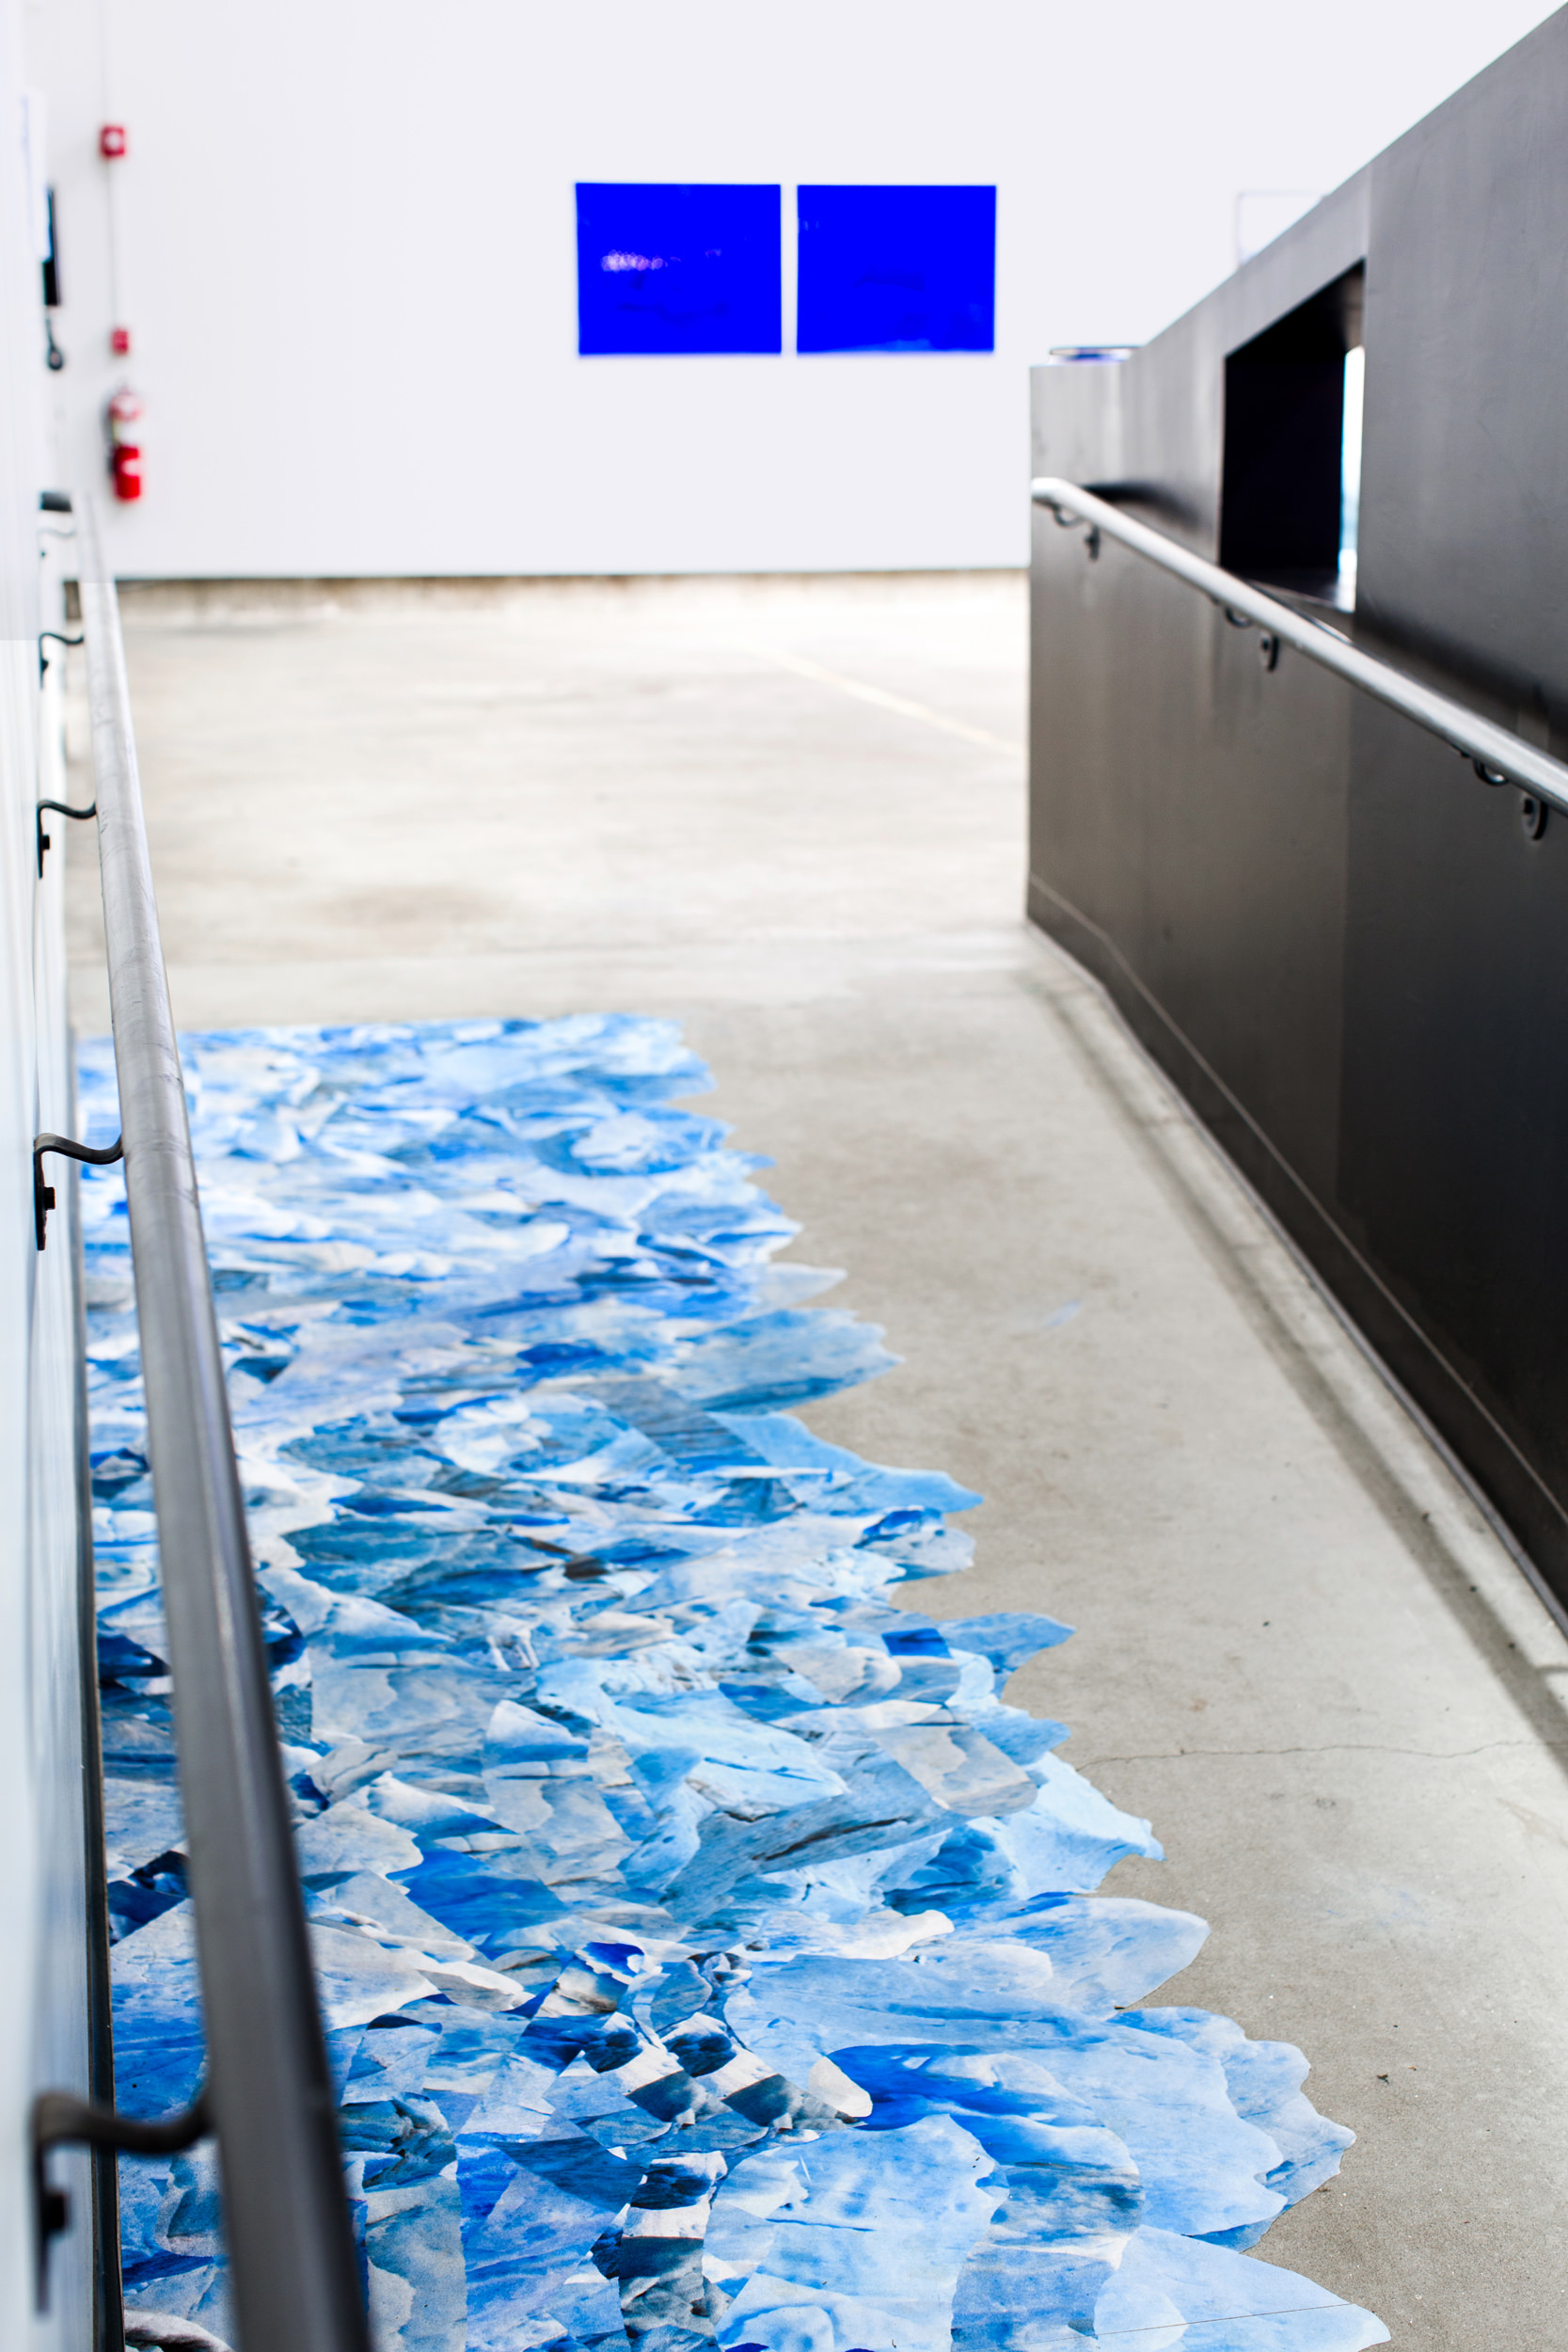 Justin Levesque, Walking Safely in Slippery Conditions, pigment print on ToughCoat vinyl flooring, 42x216, 2018